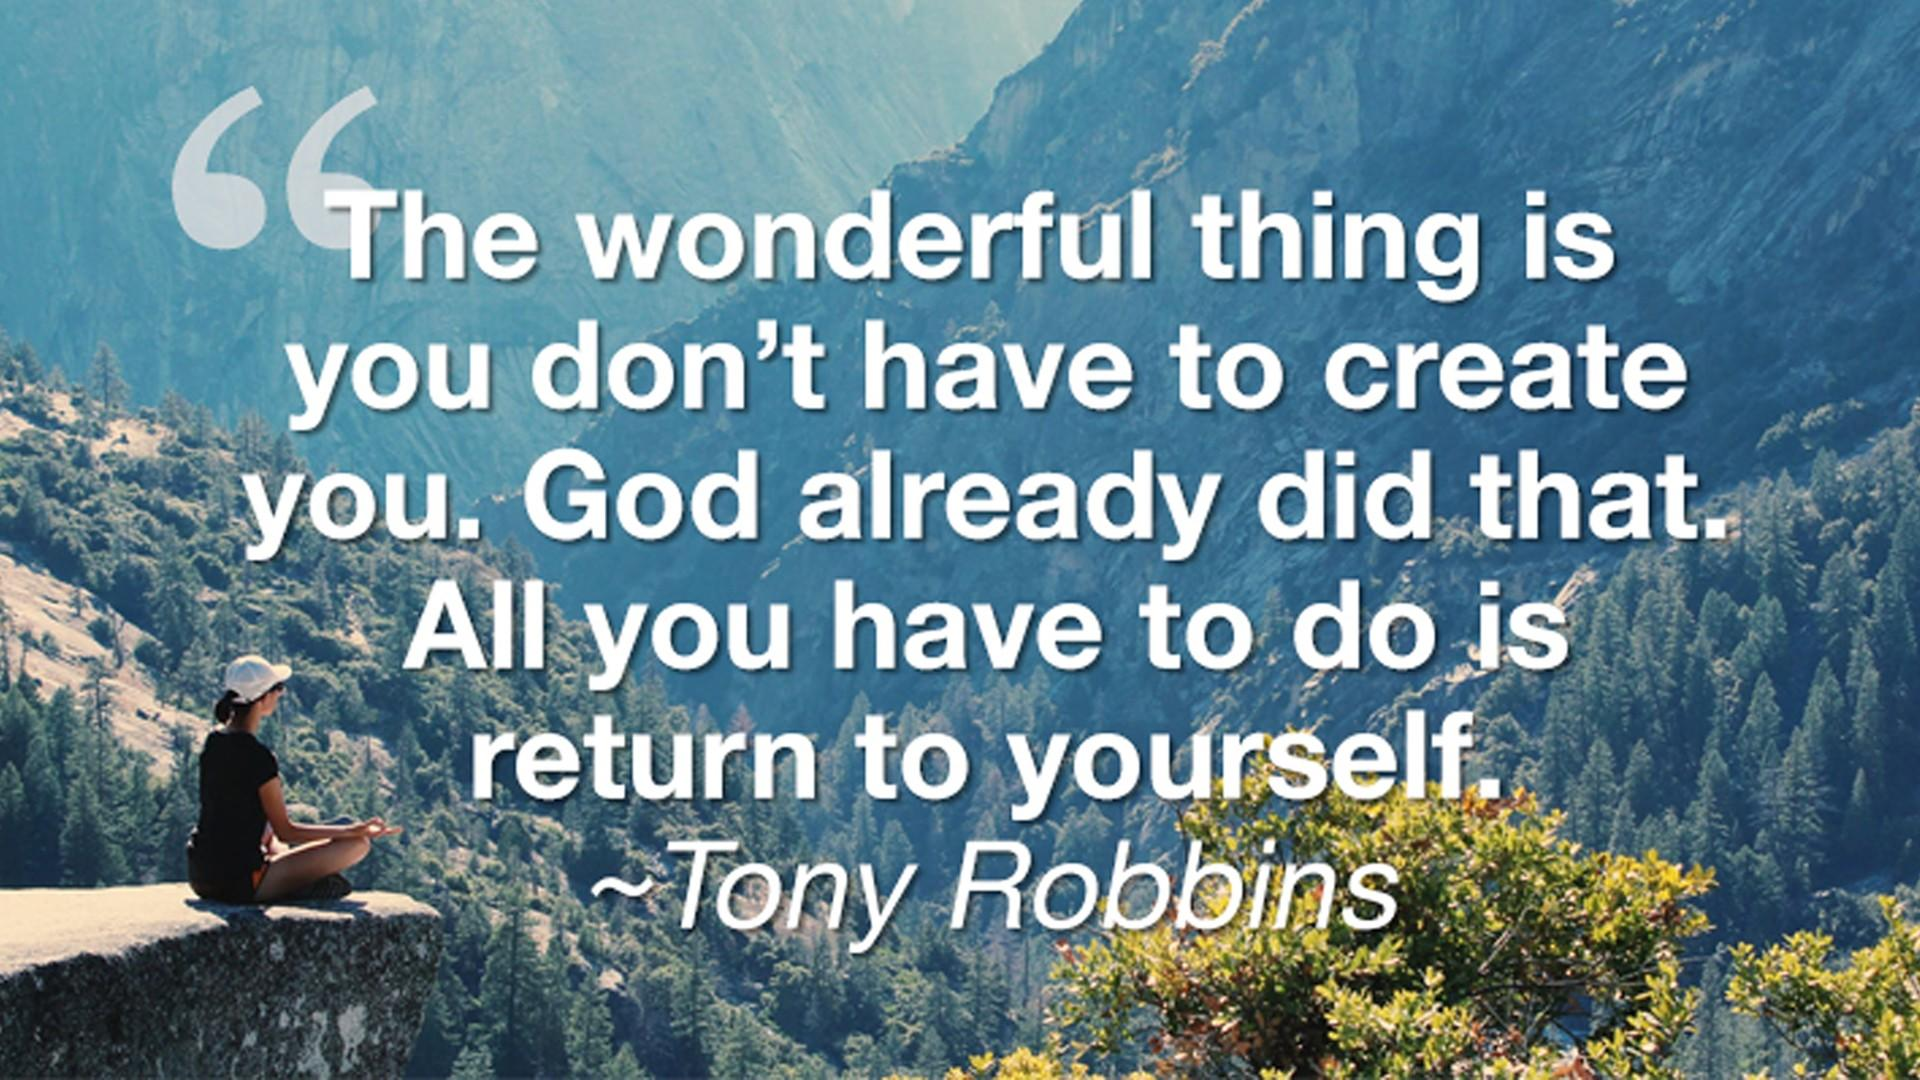 Tony Robbins Quote - You don't have to create you — God already did that. All you have to do is return to yourself.